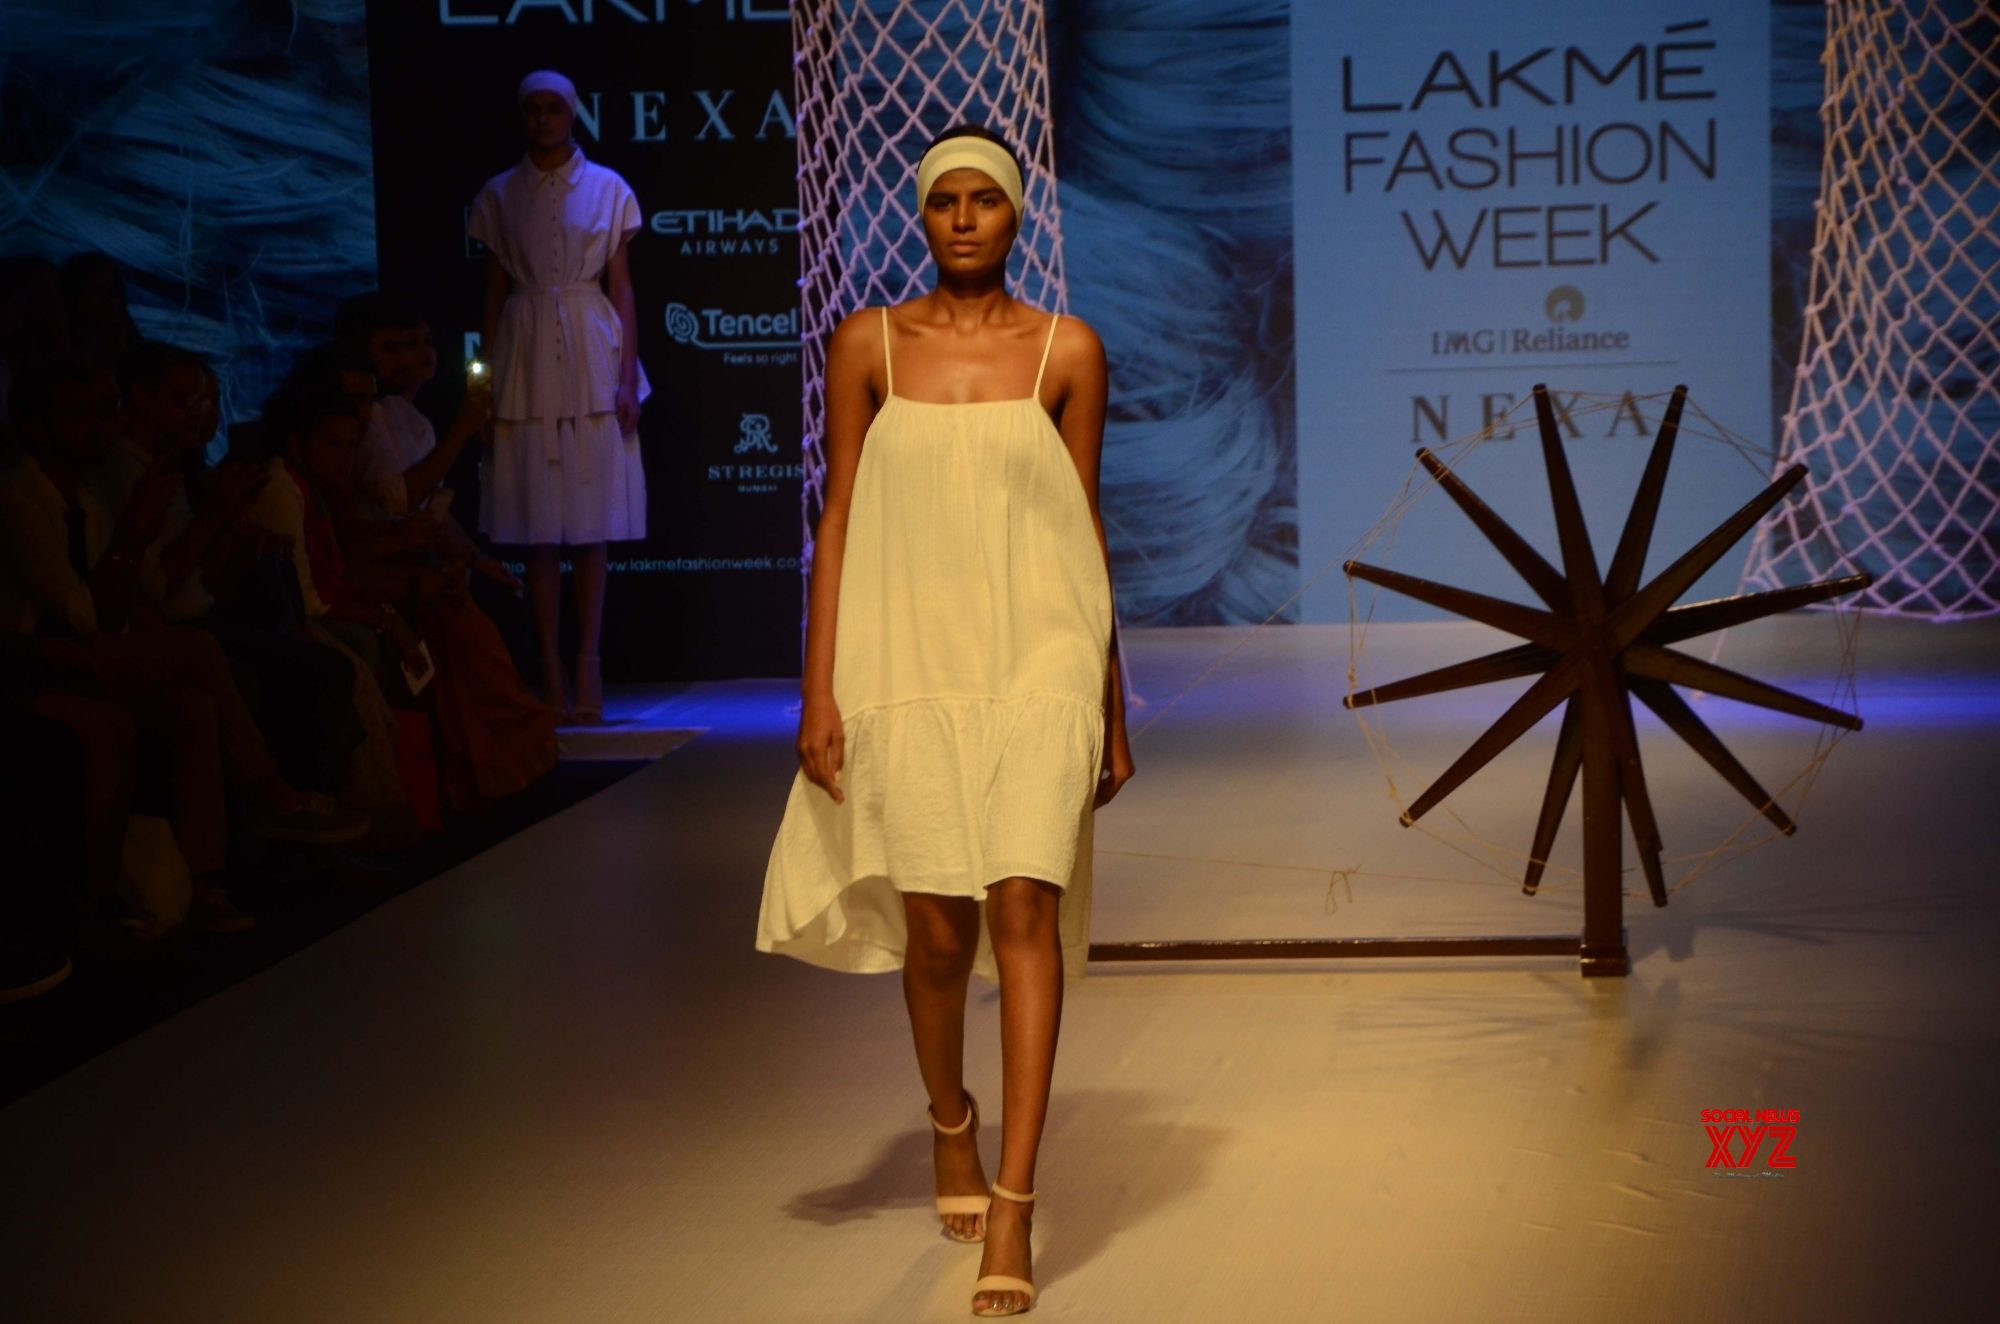 Mumbai: Lars Andersson, Buna and Jewellyn Alvares's show at Lakme Fashion Week Winter/Festive 2018 #Gallery